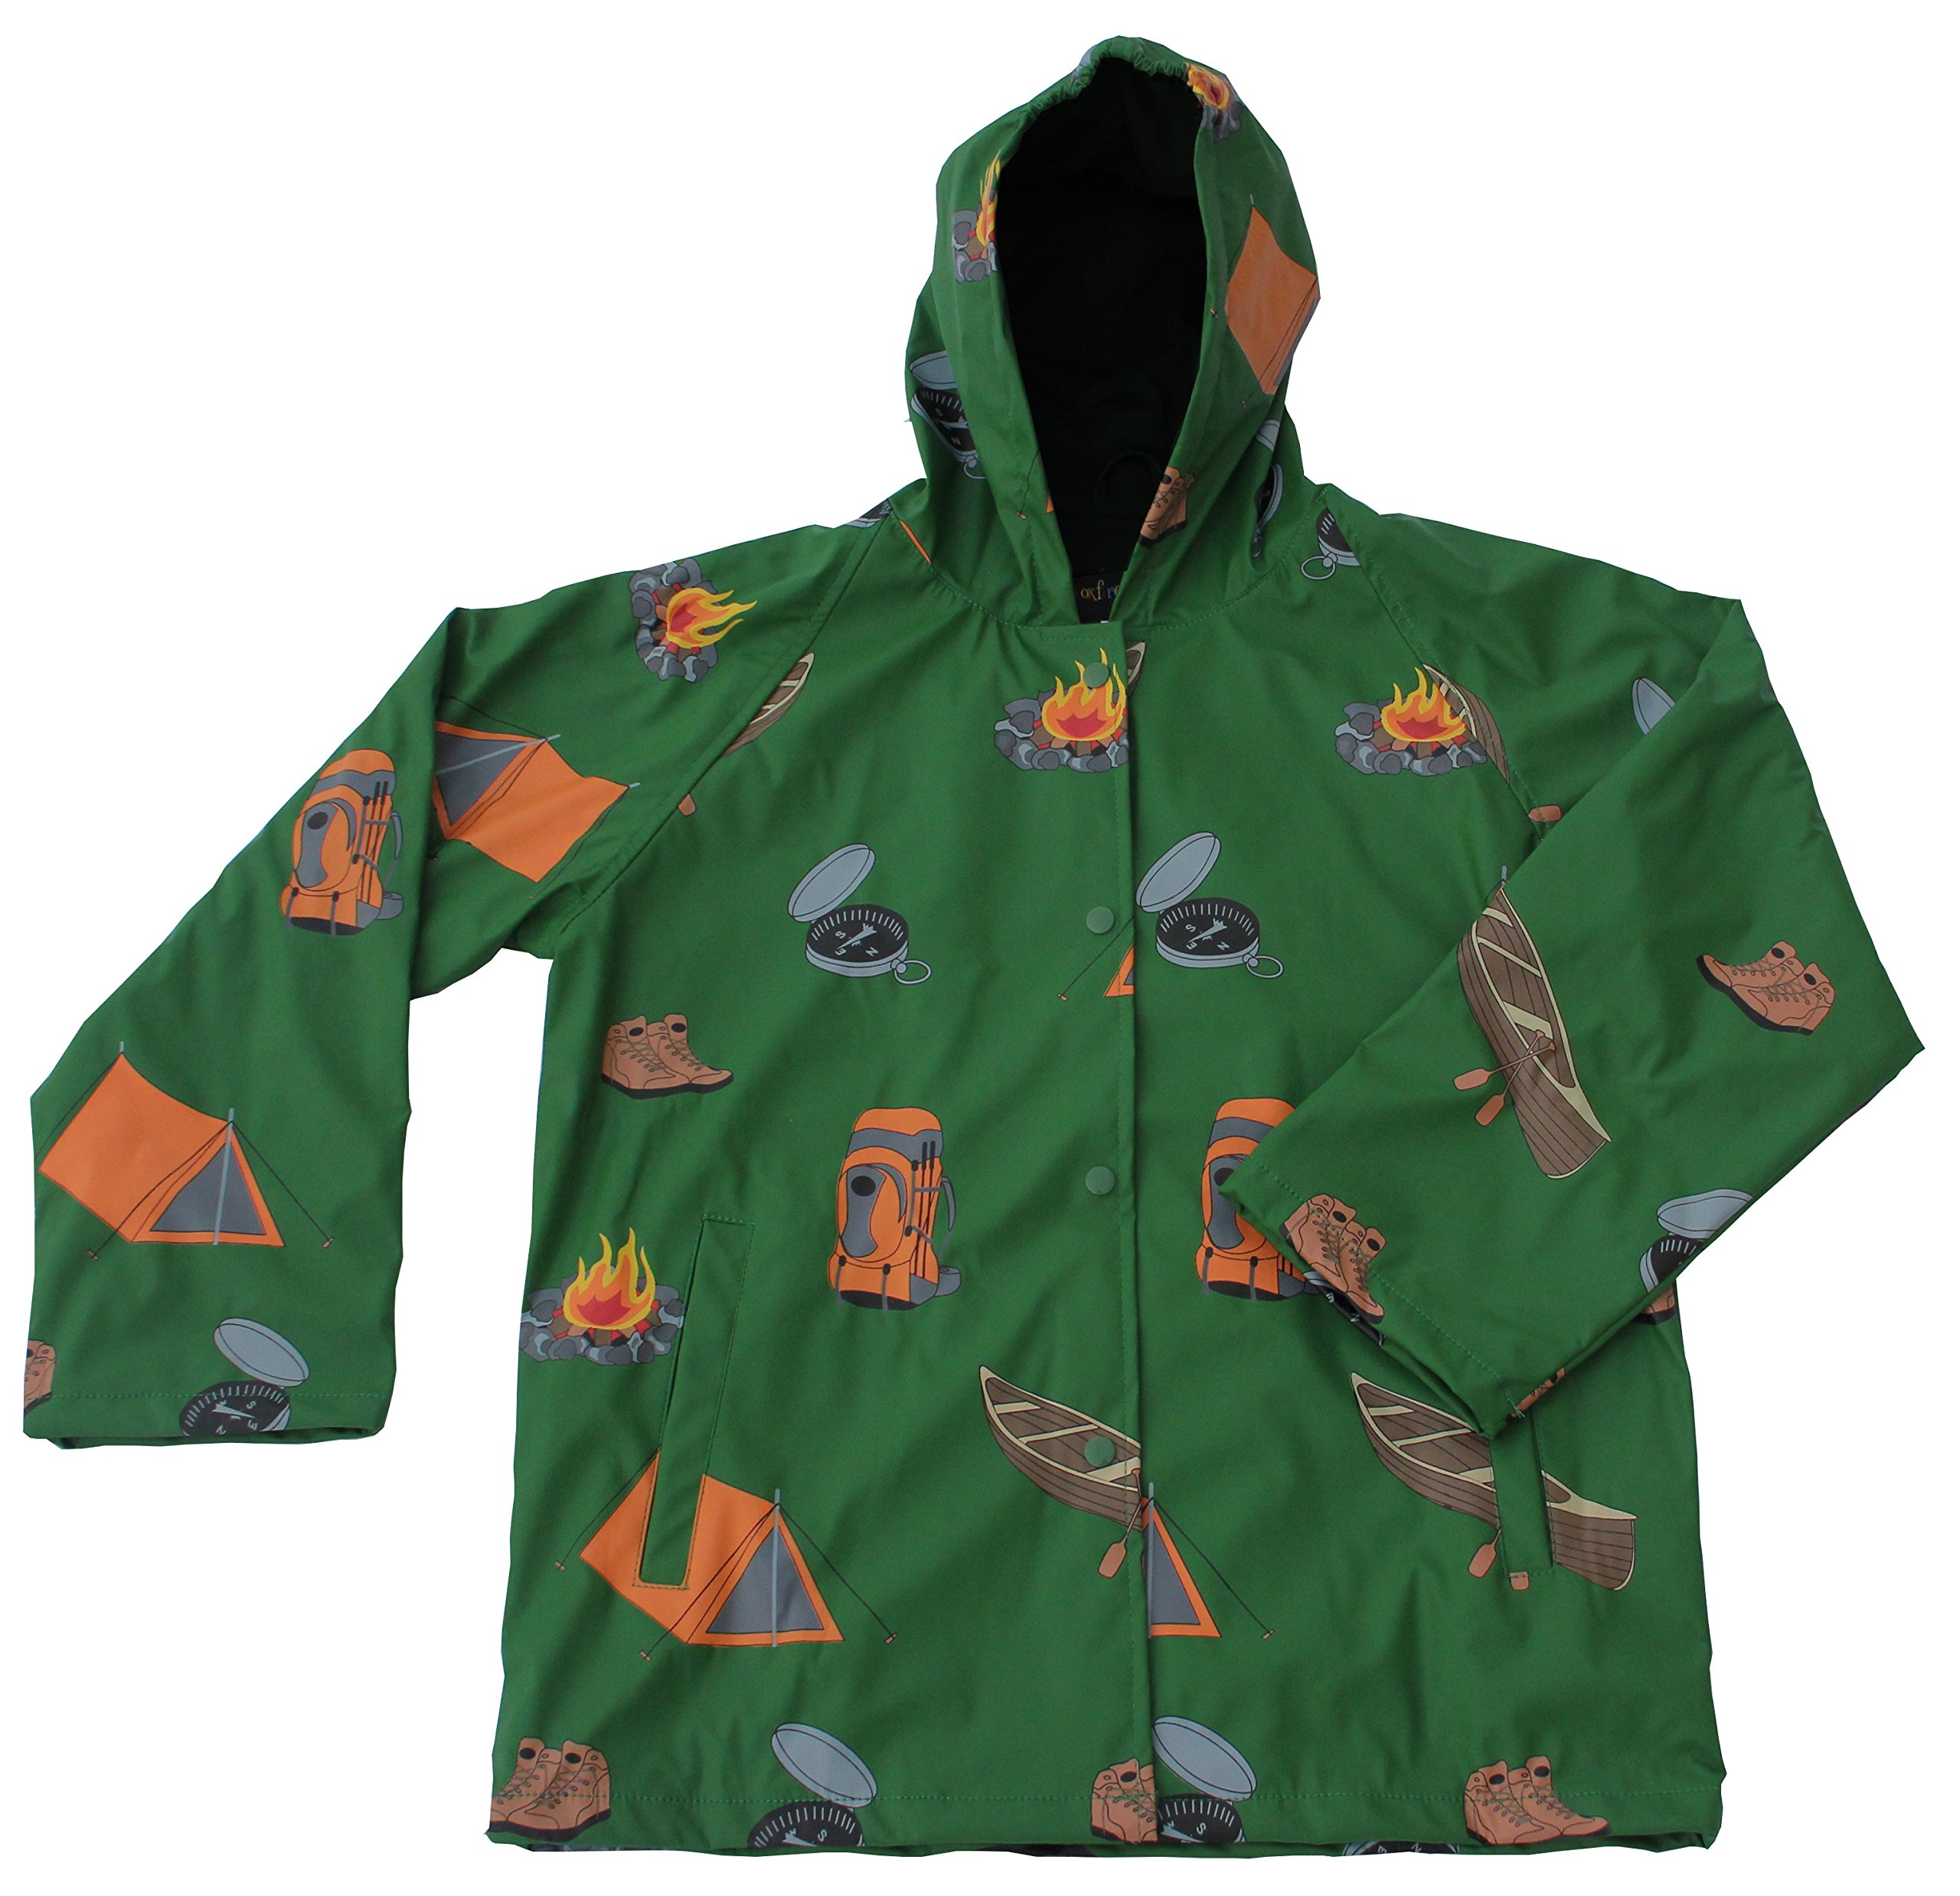 Foxfire for Kids Boys Green Camping Adventure Raincoat Size 1T